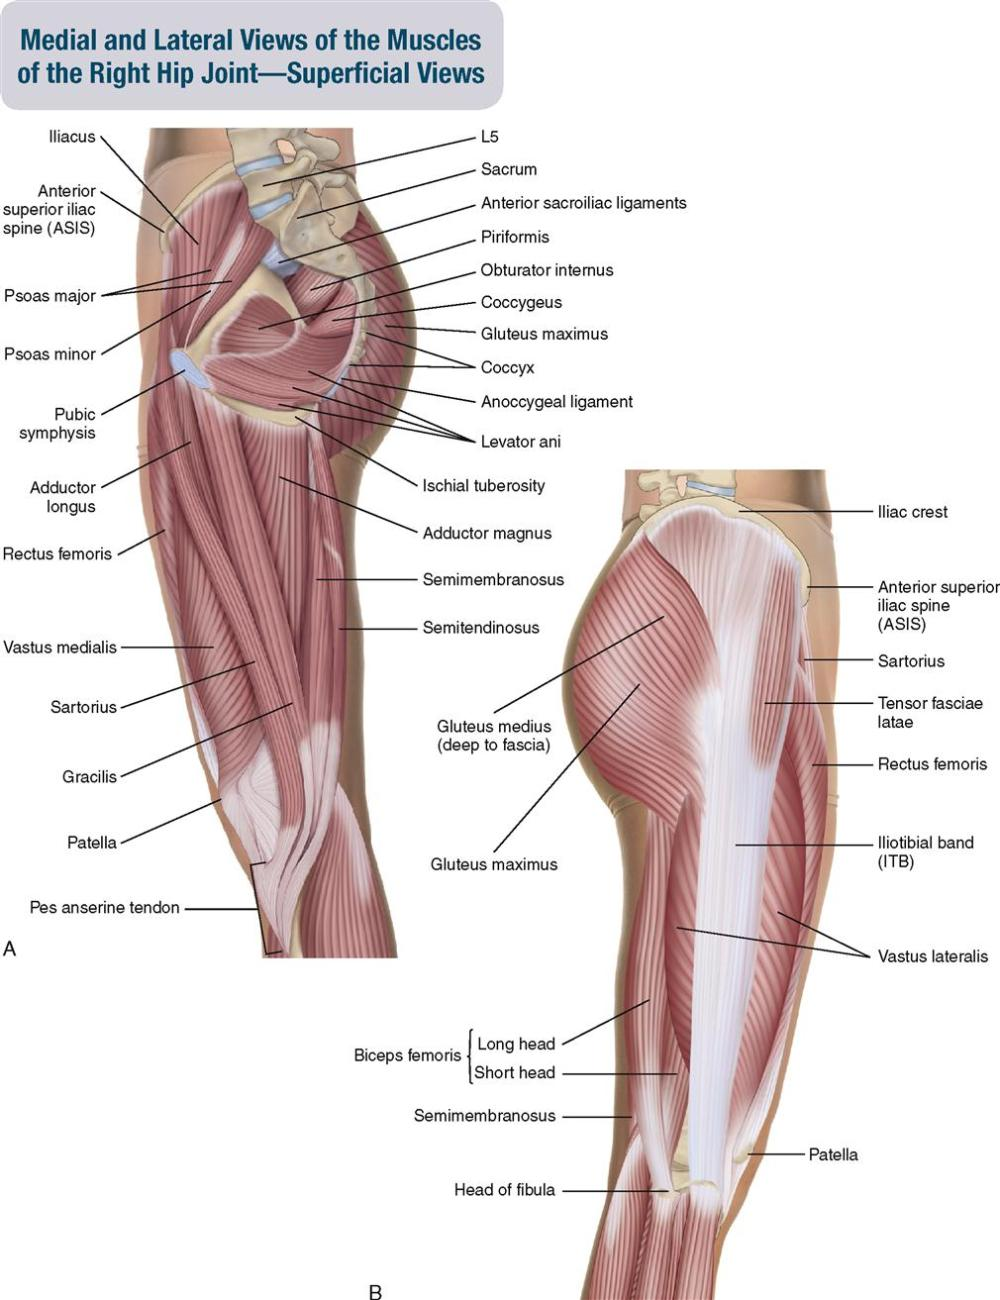 medium resolution of figure 10 3 a medial view of the muscles of the right hip joint superficial b lateral view of the muscles of the right hip joint superficial